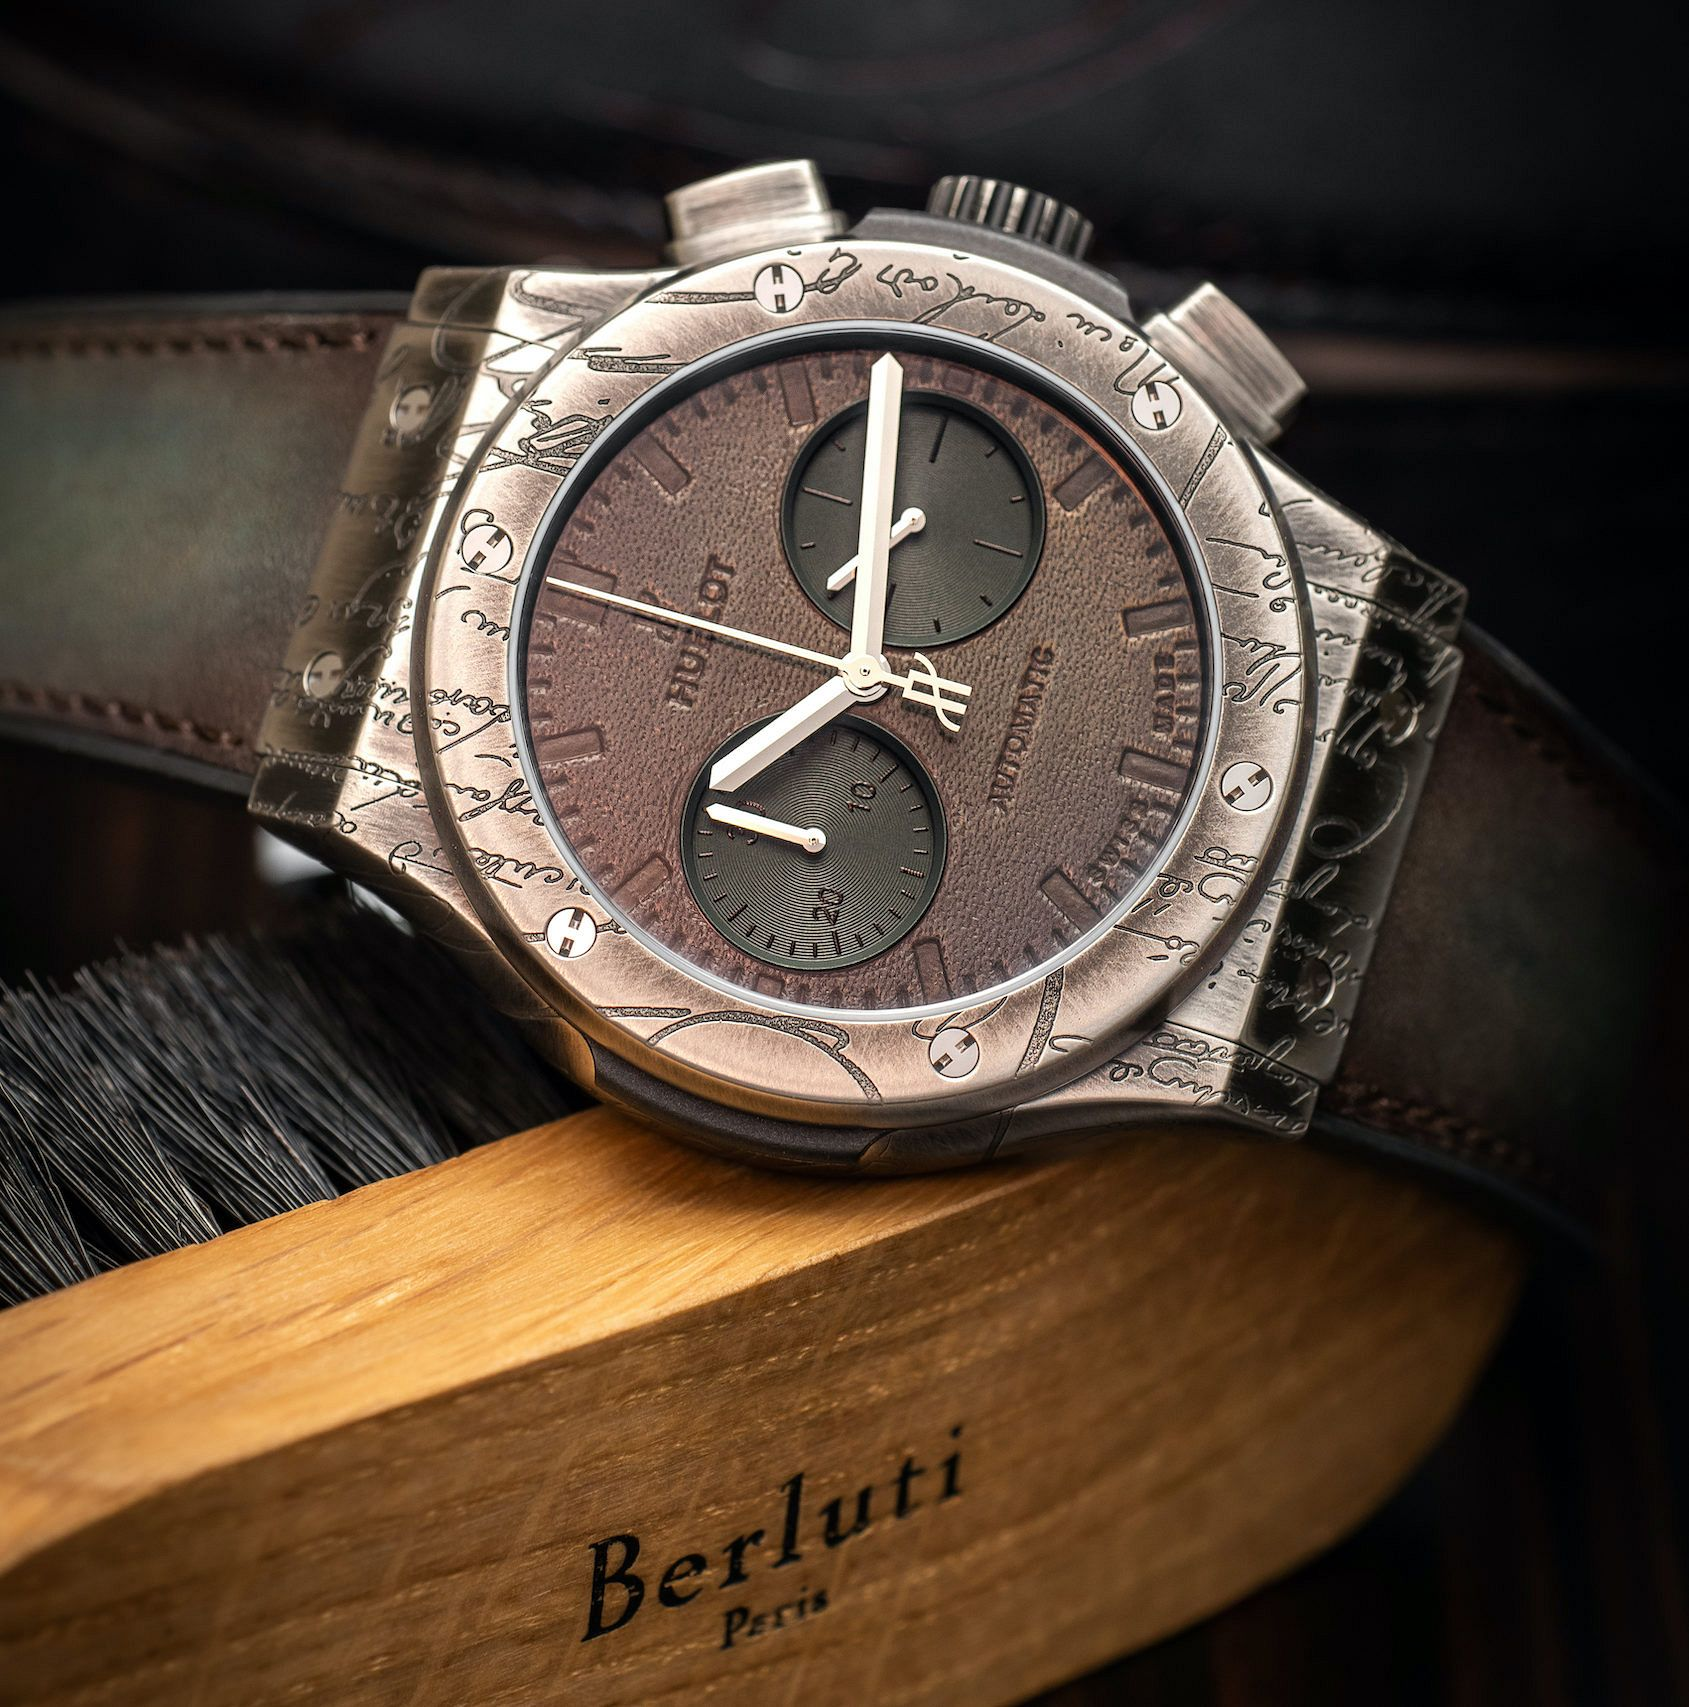 Hublot fathers day gifts